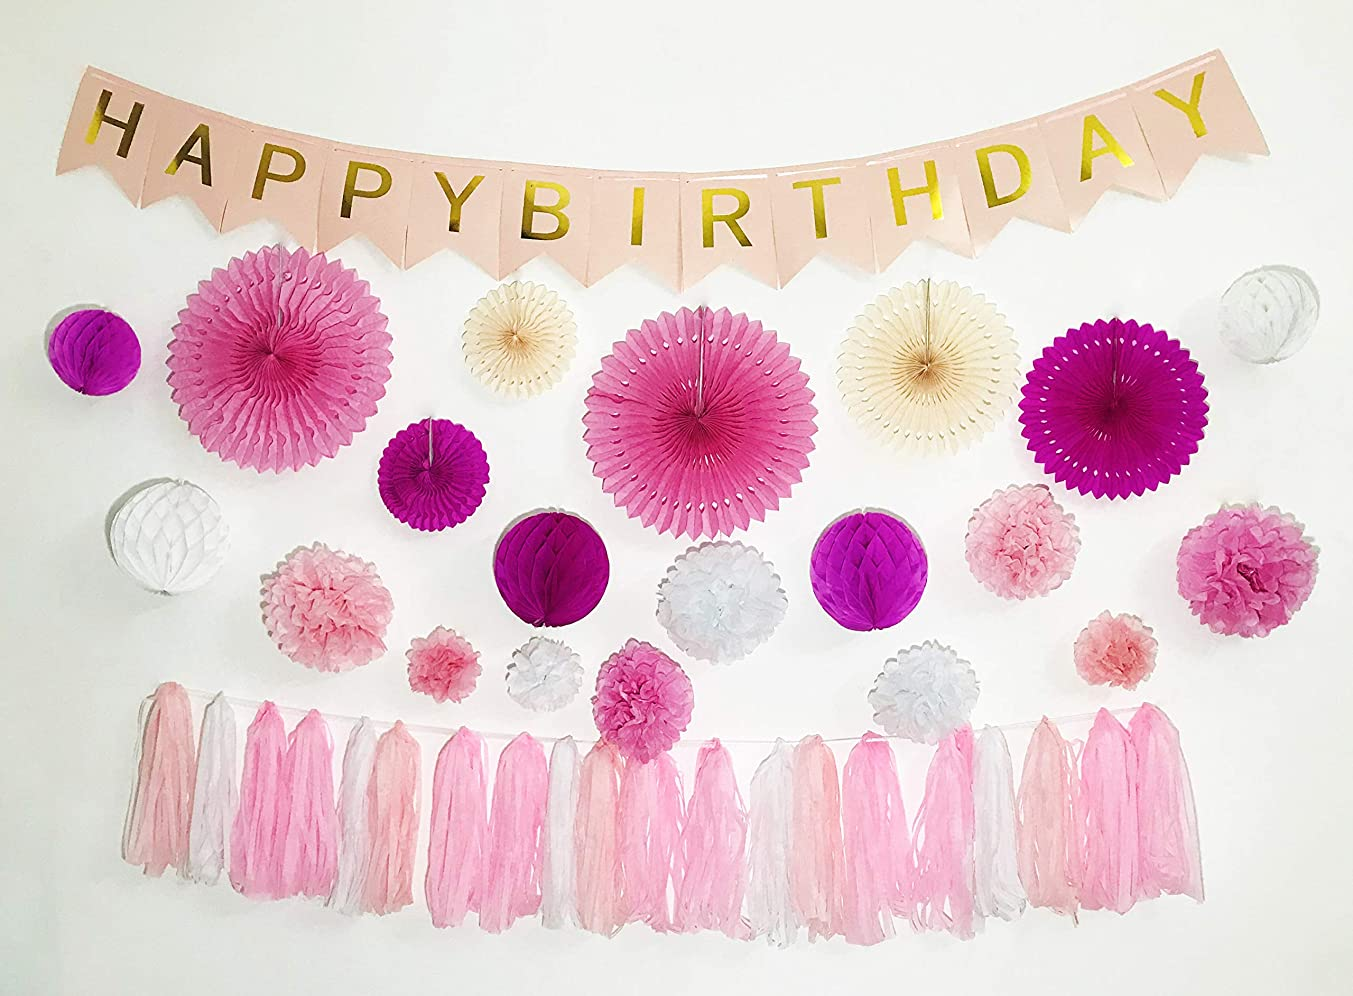 PINK Birthday Party Decoration 41pcs Party Decors and Supplies Happy Birthday Banner Paper Tassels Paper Poms Honeycomb Balls Party Hanging Paper Fans Multilayer and Transparent Hole around (Pink Set)